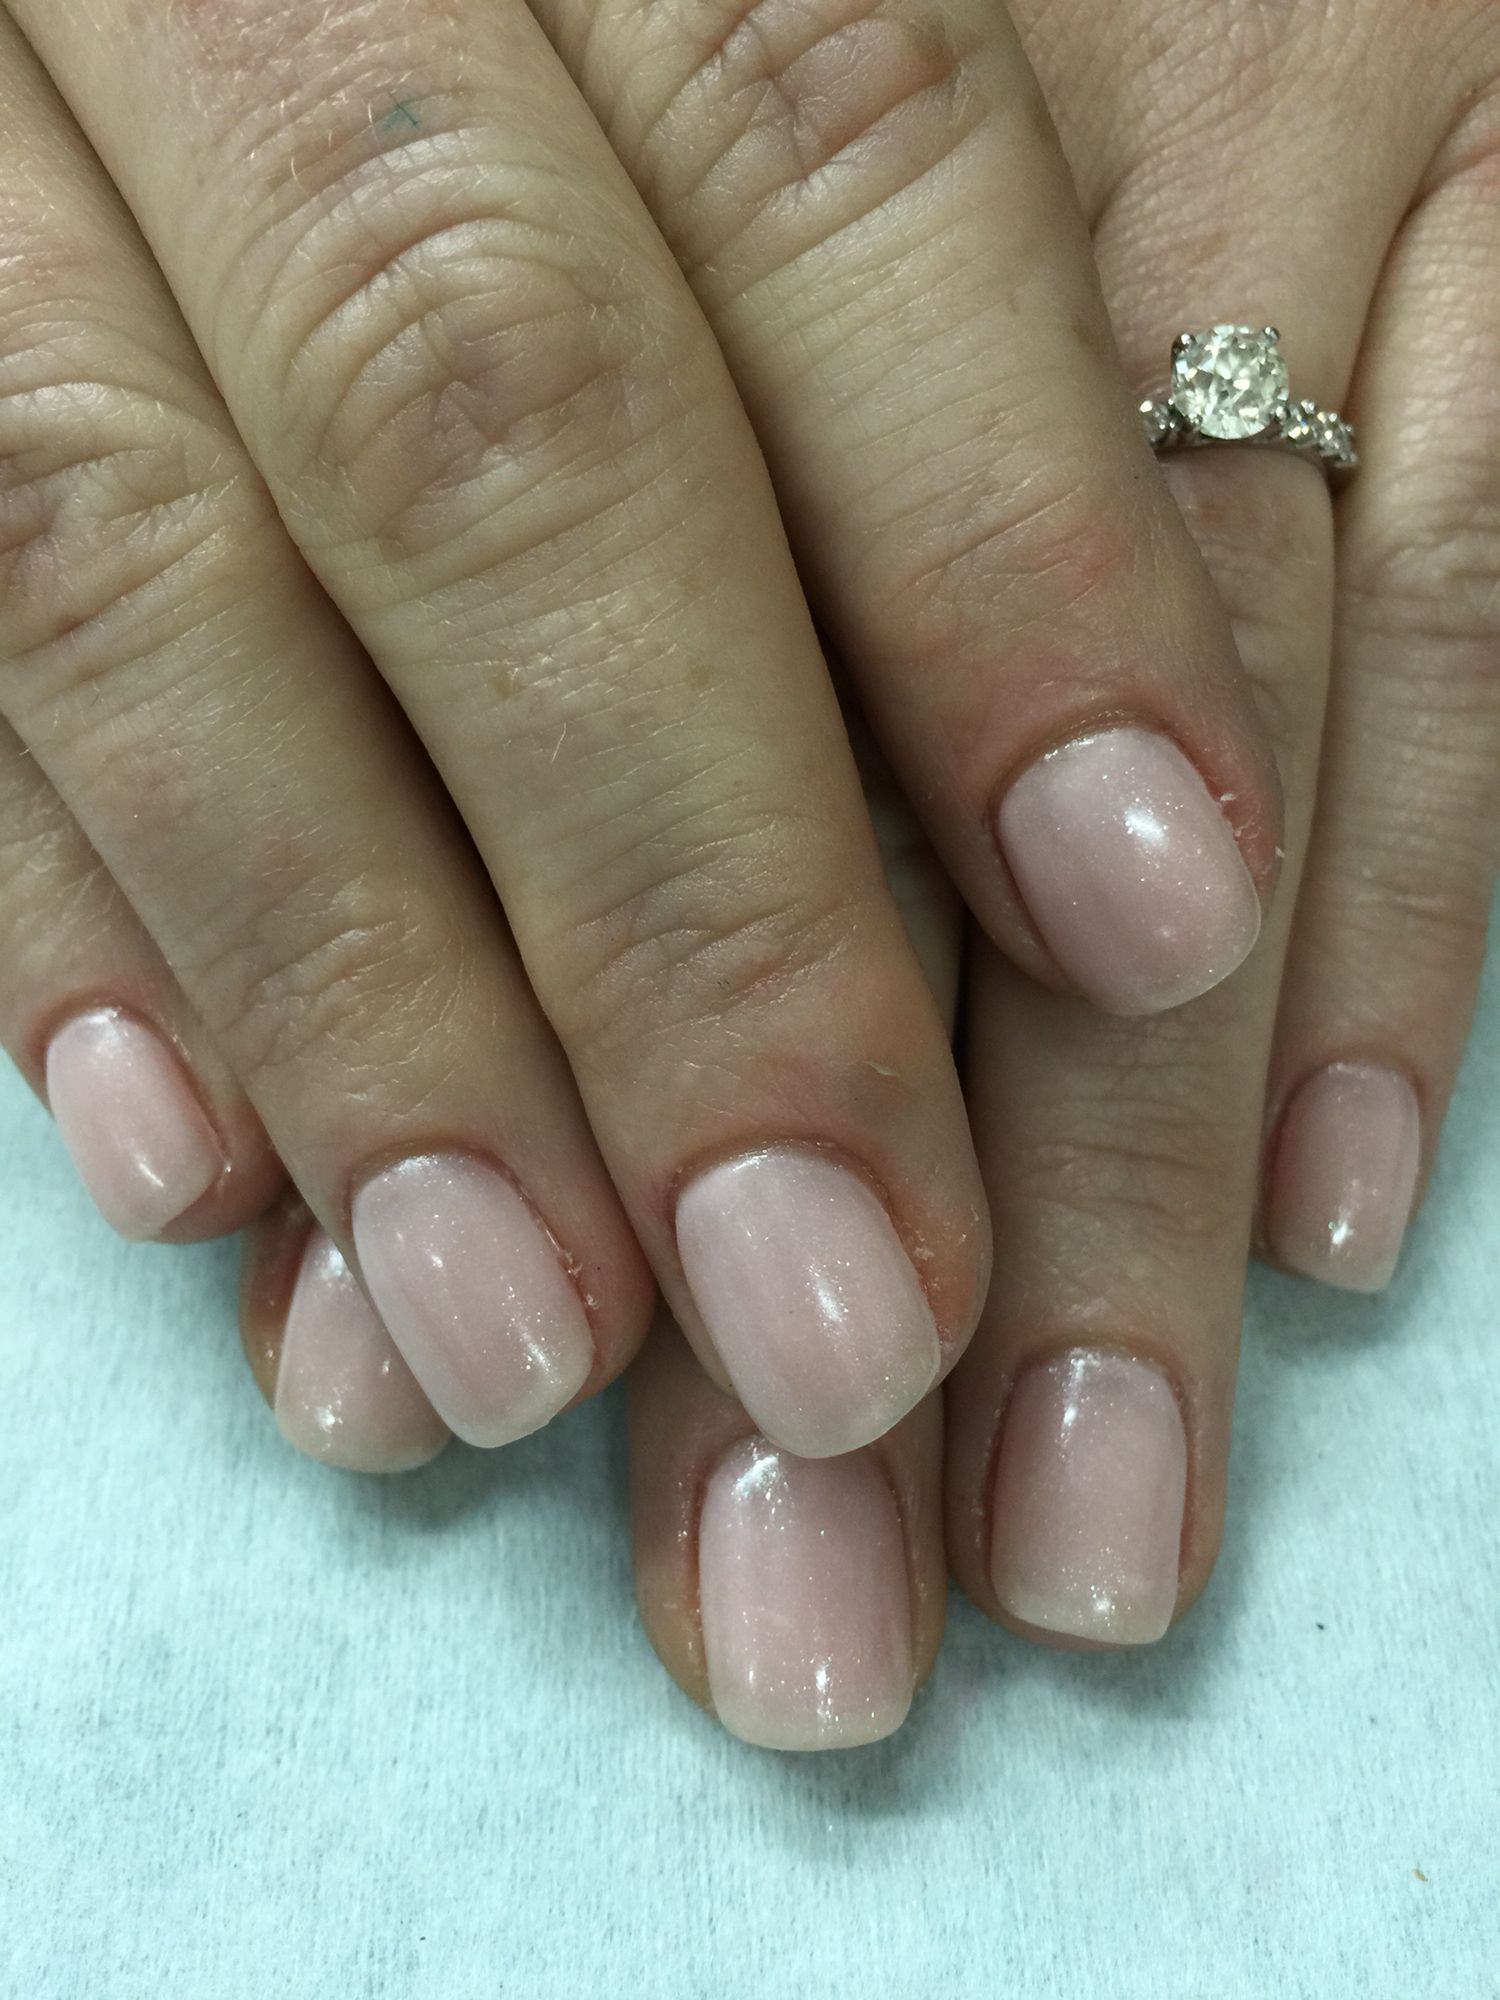 Sheer sparkle pale pink gel polish over non-toxic odorless hard gel ...